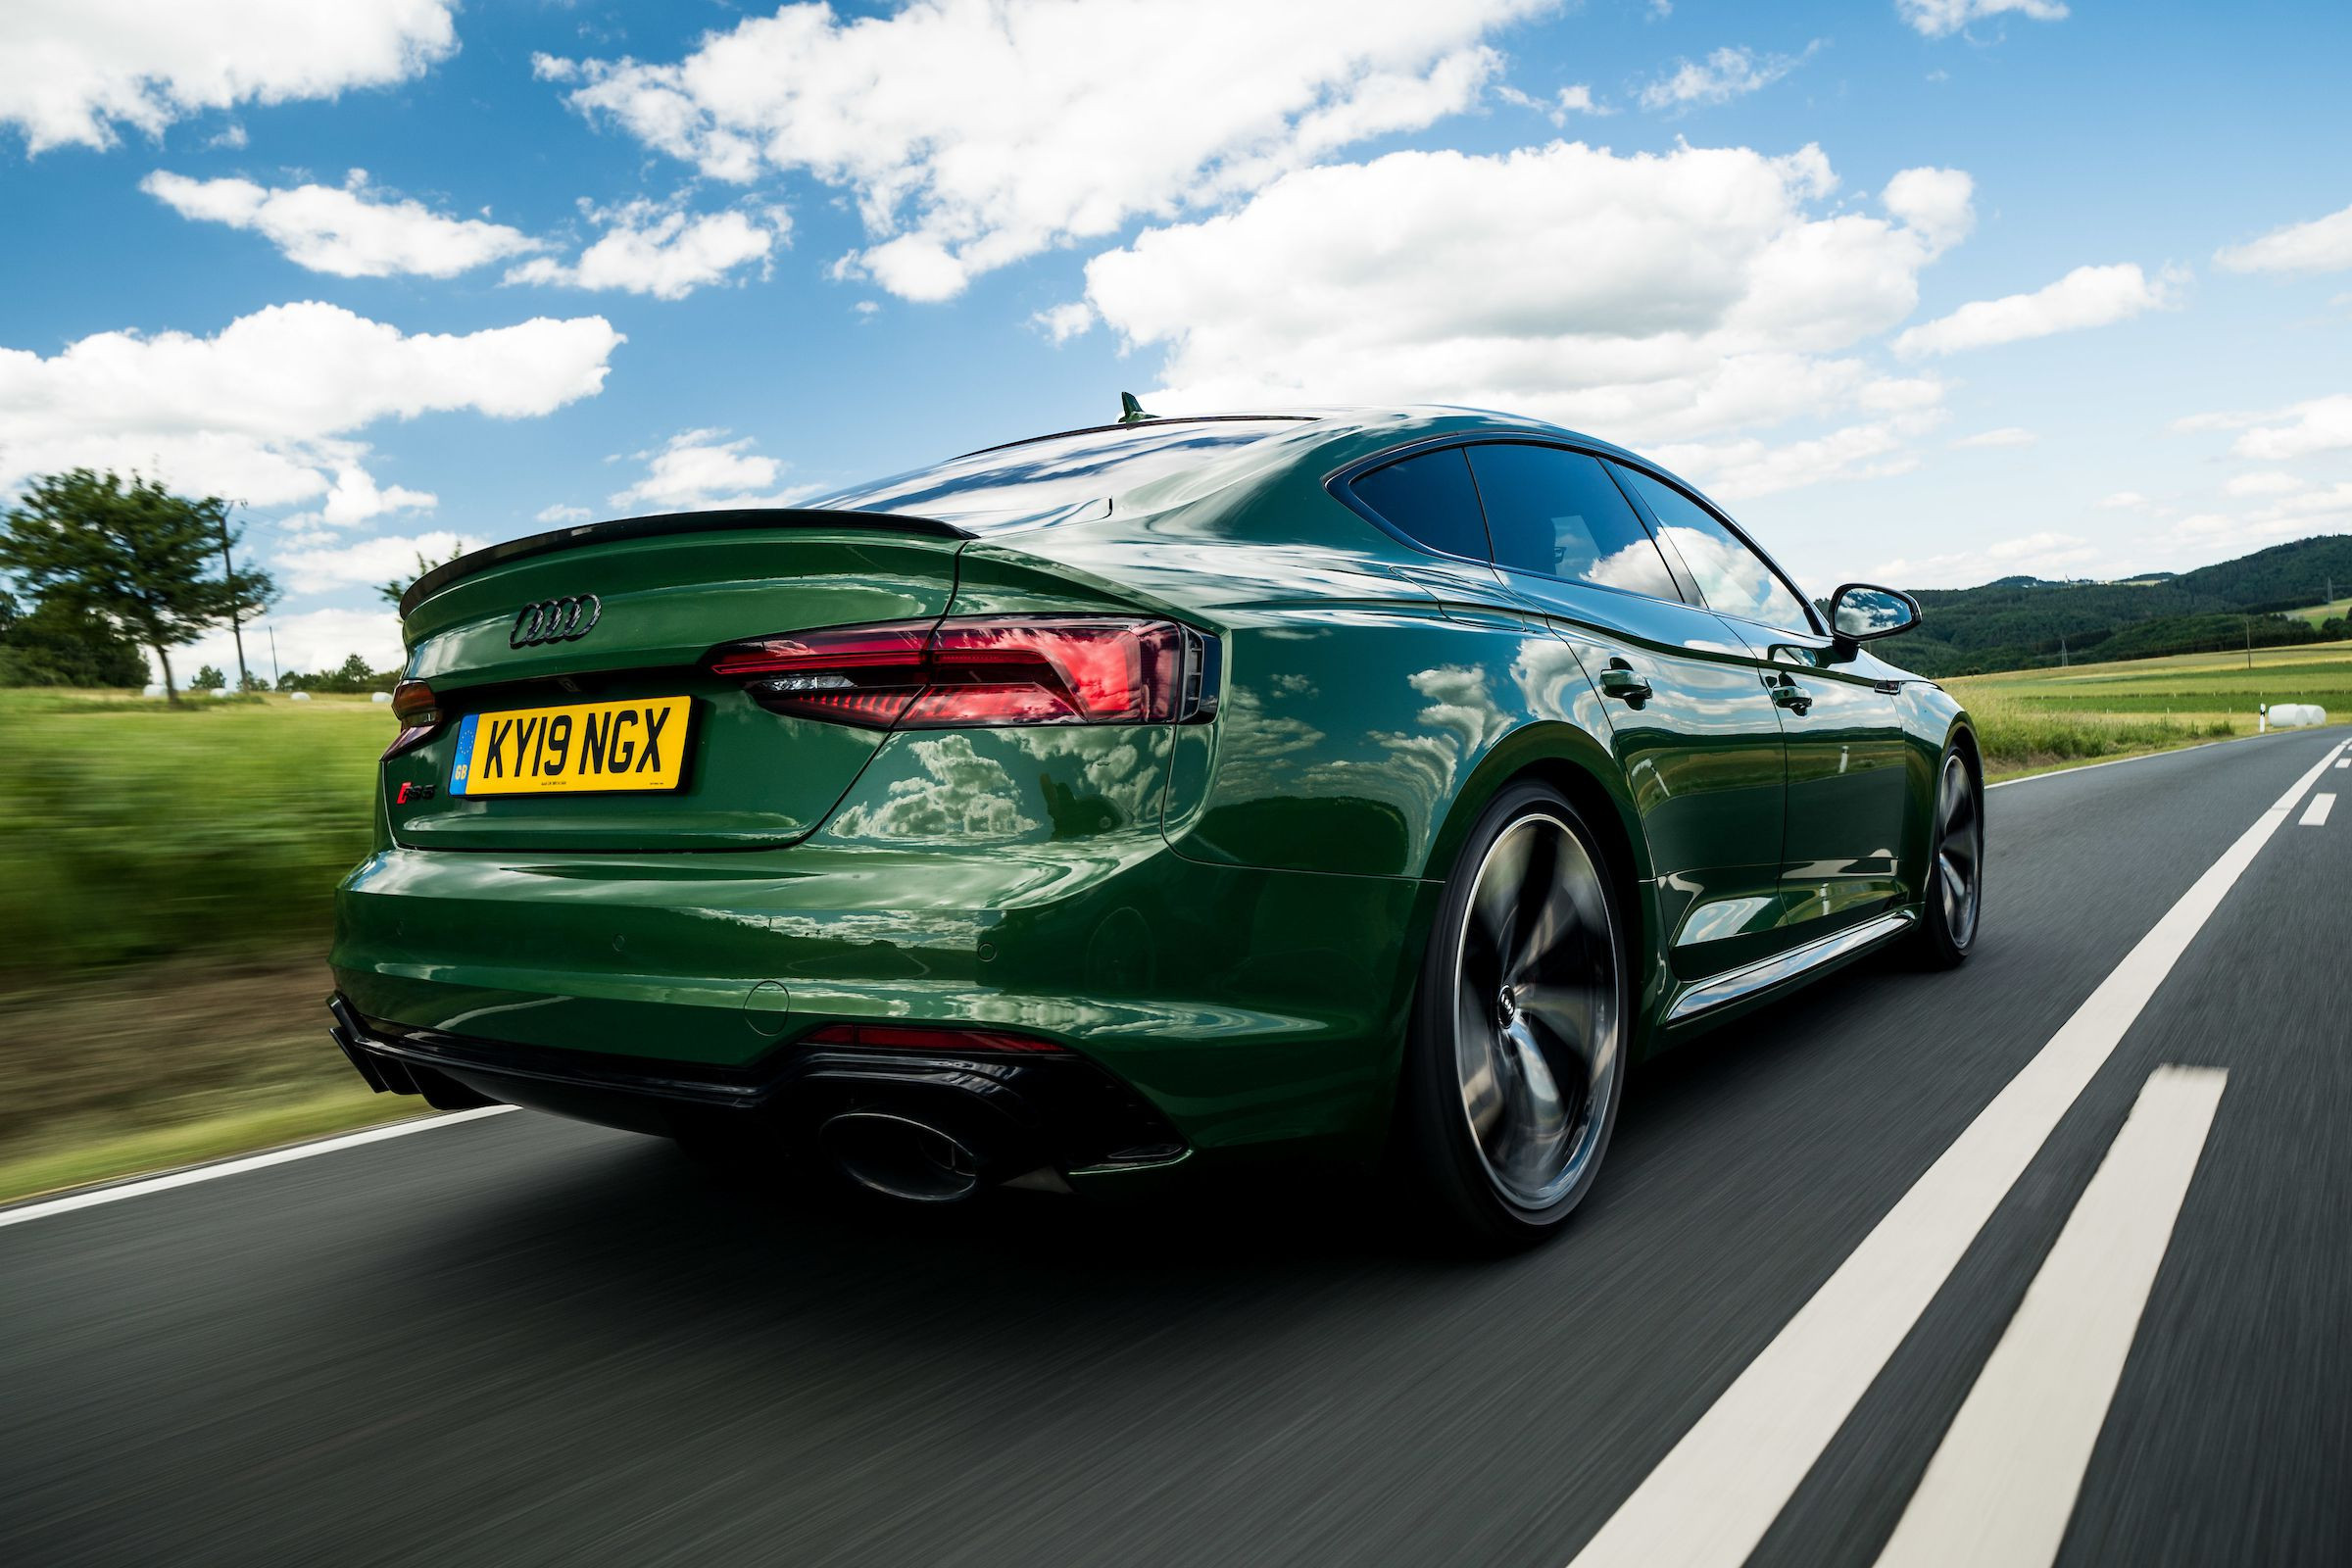 rear view of Audi RS5 Sportback